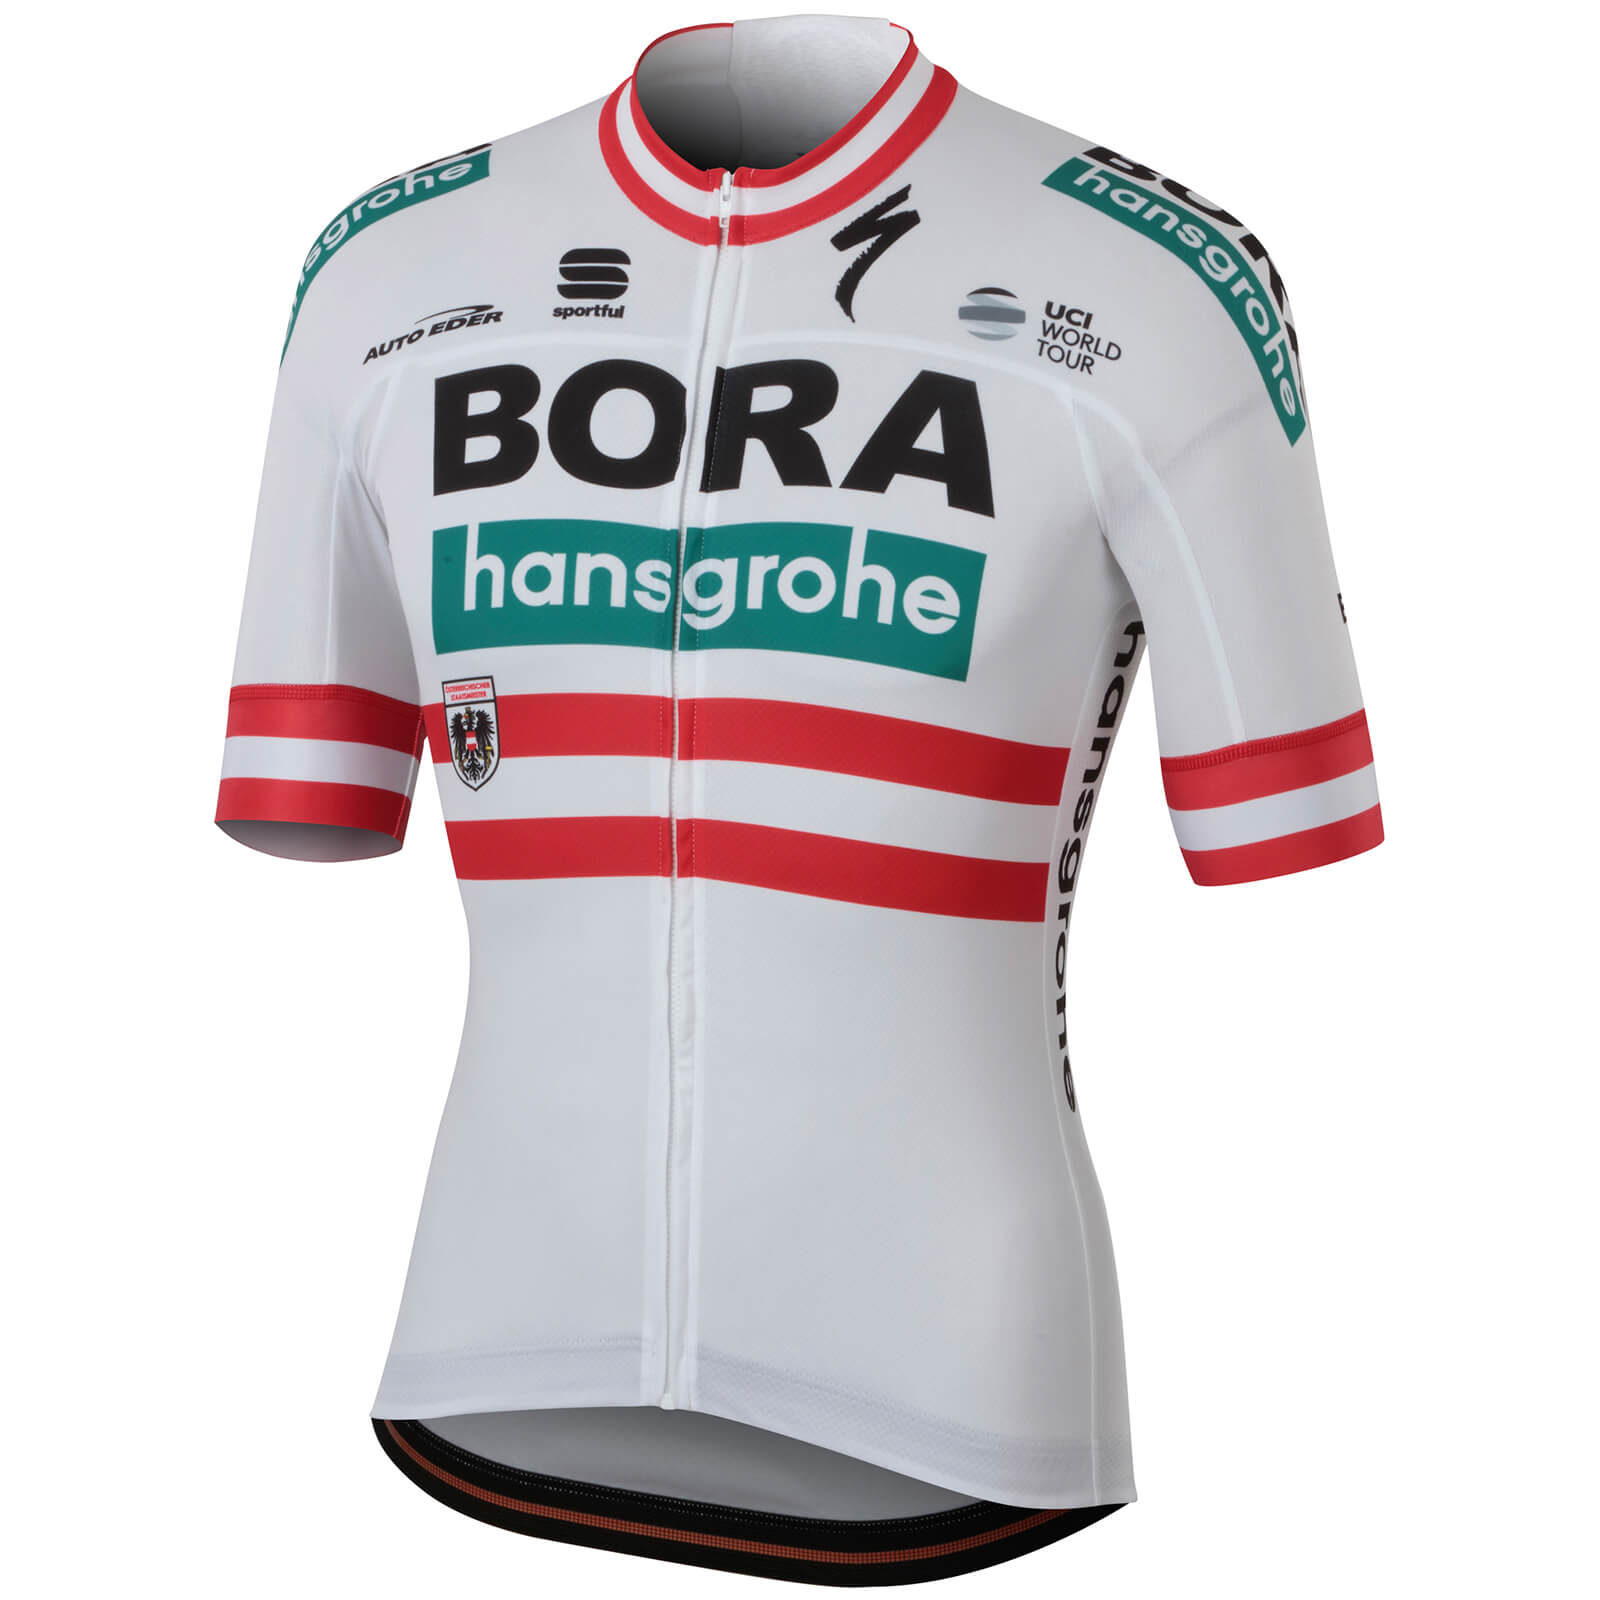 Sportful Bora Hansgrohe BodyFit Team Jersey - Austrian National Champion Edition